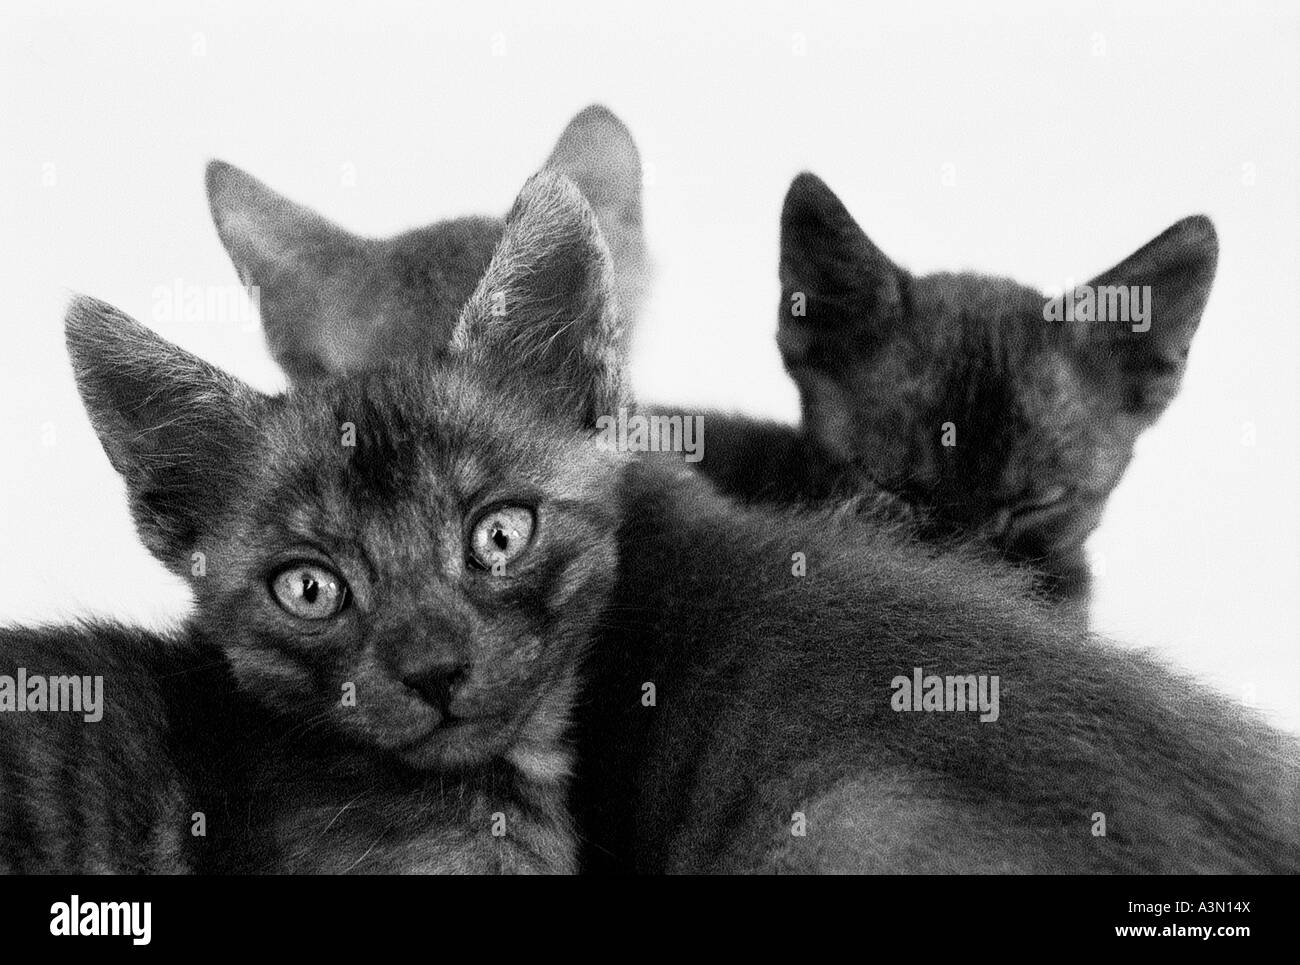 Young cats - Stock Image